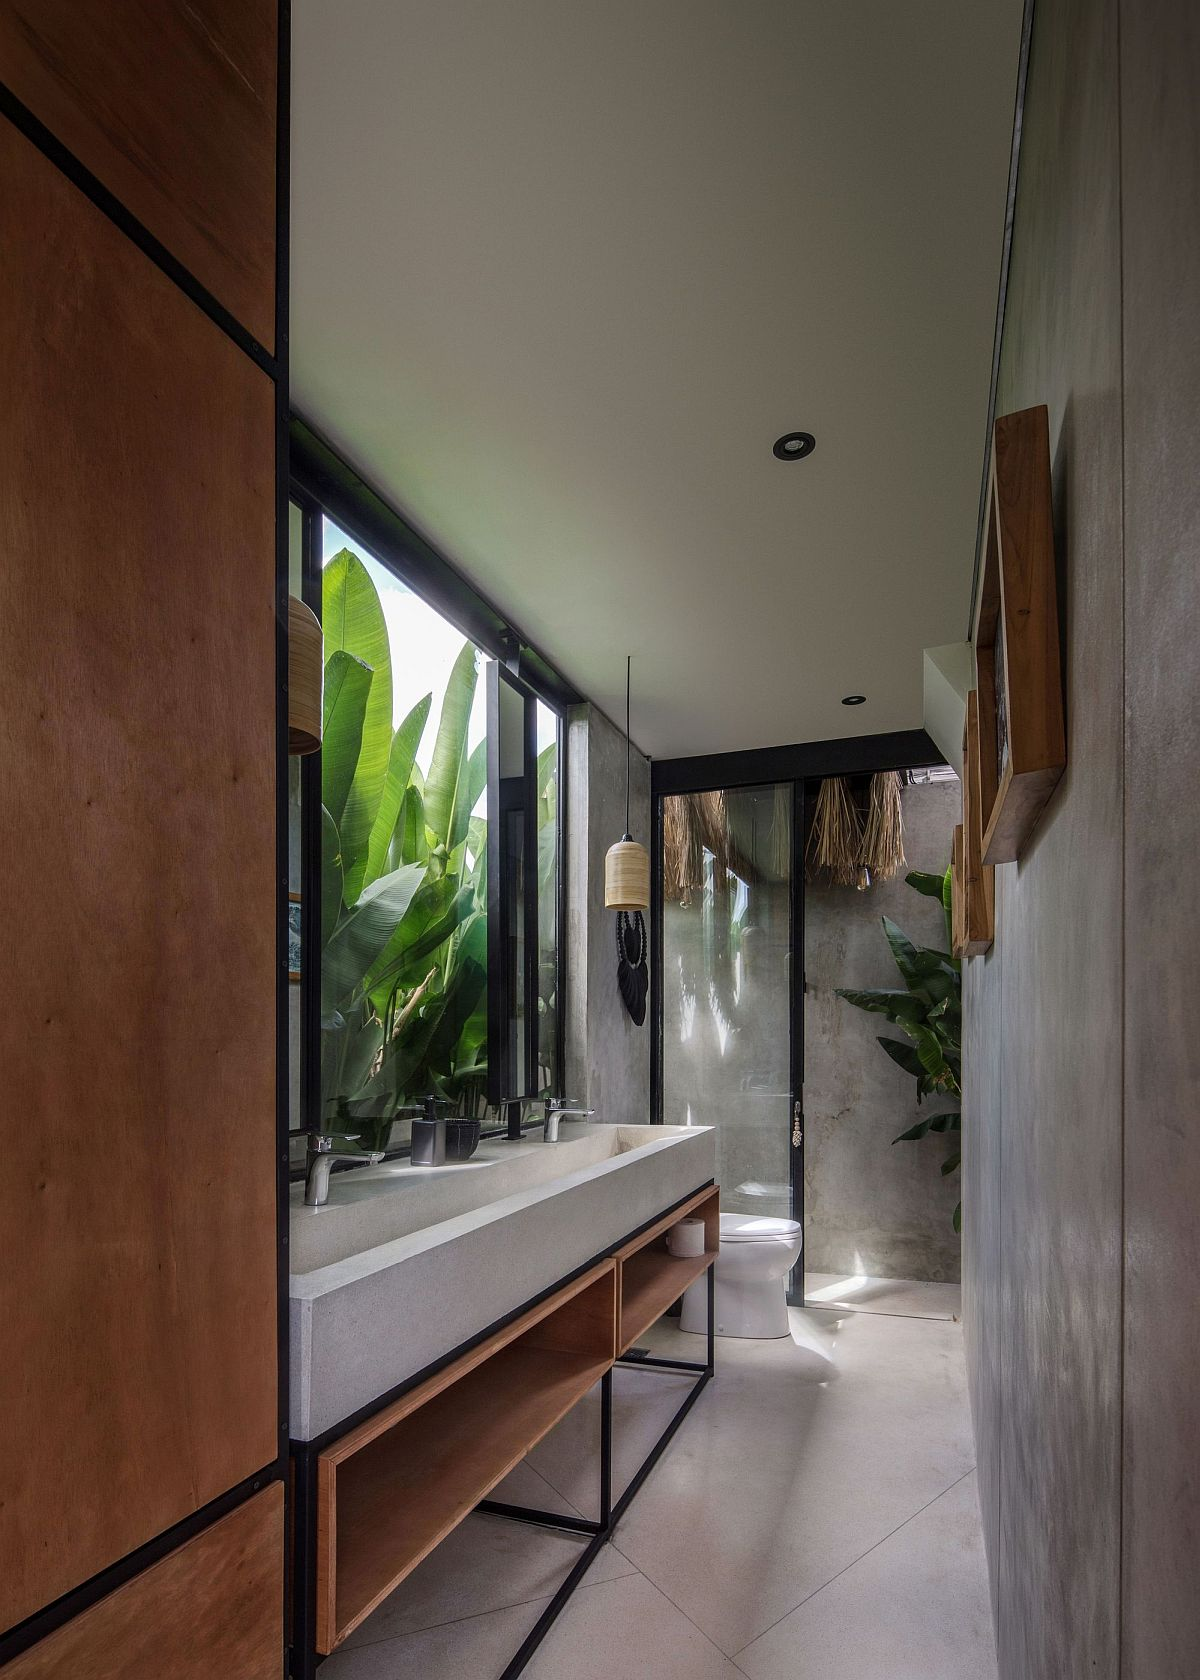 Large banana plants outside become a part ofthe modern minimal bathroom in here